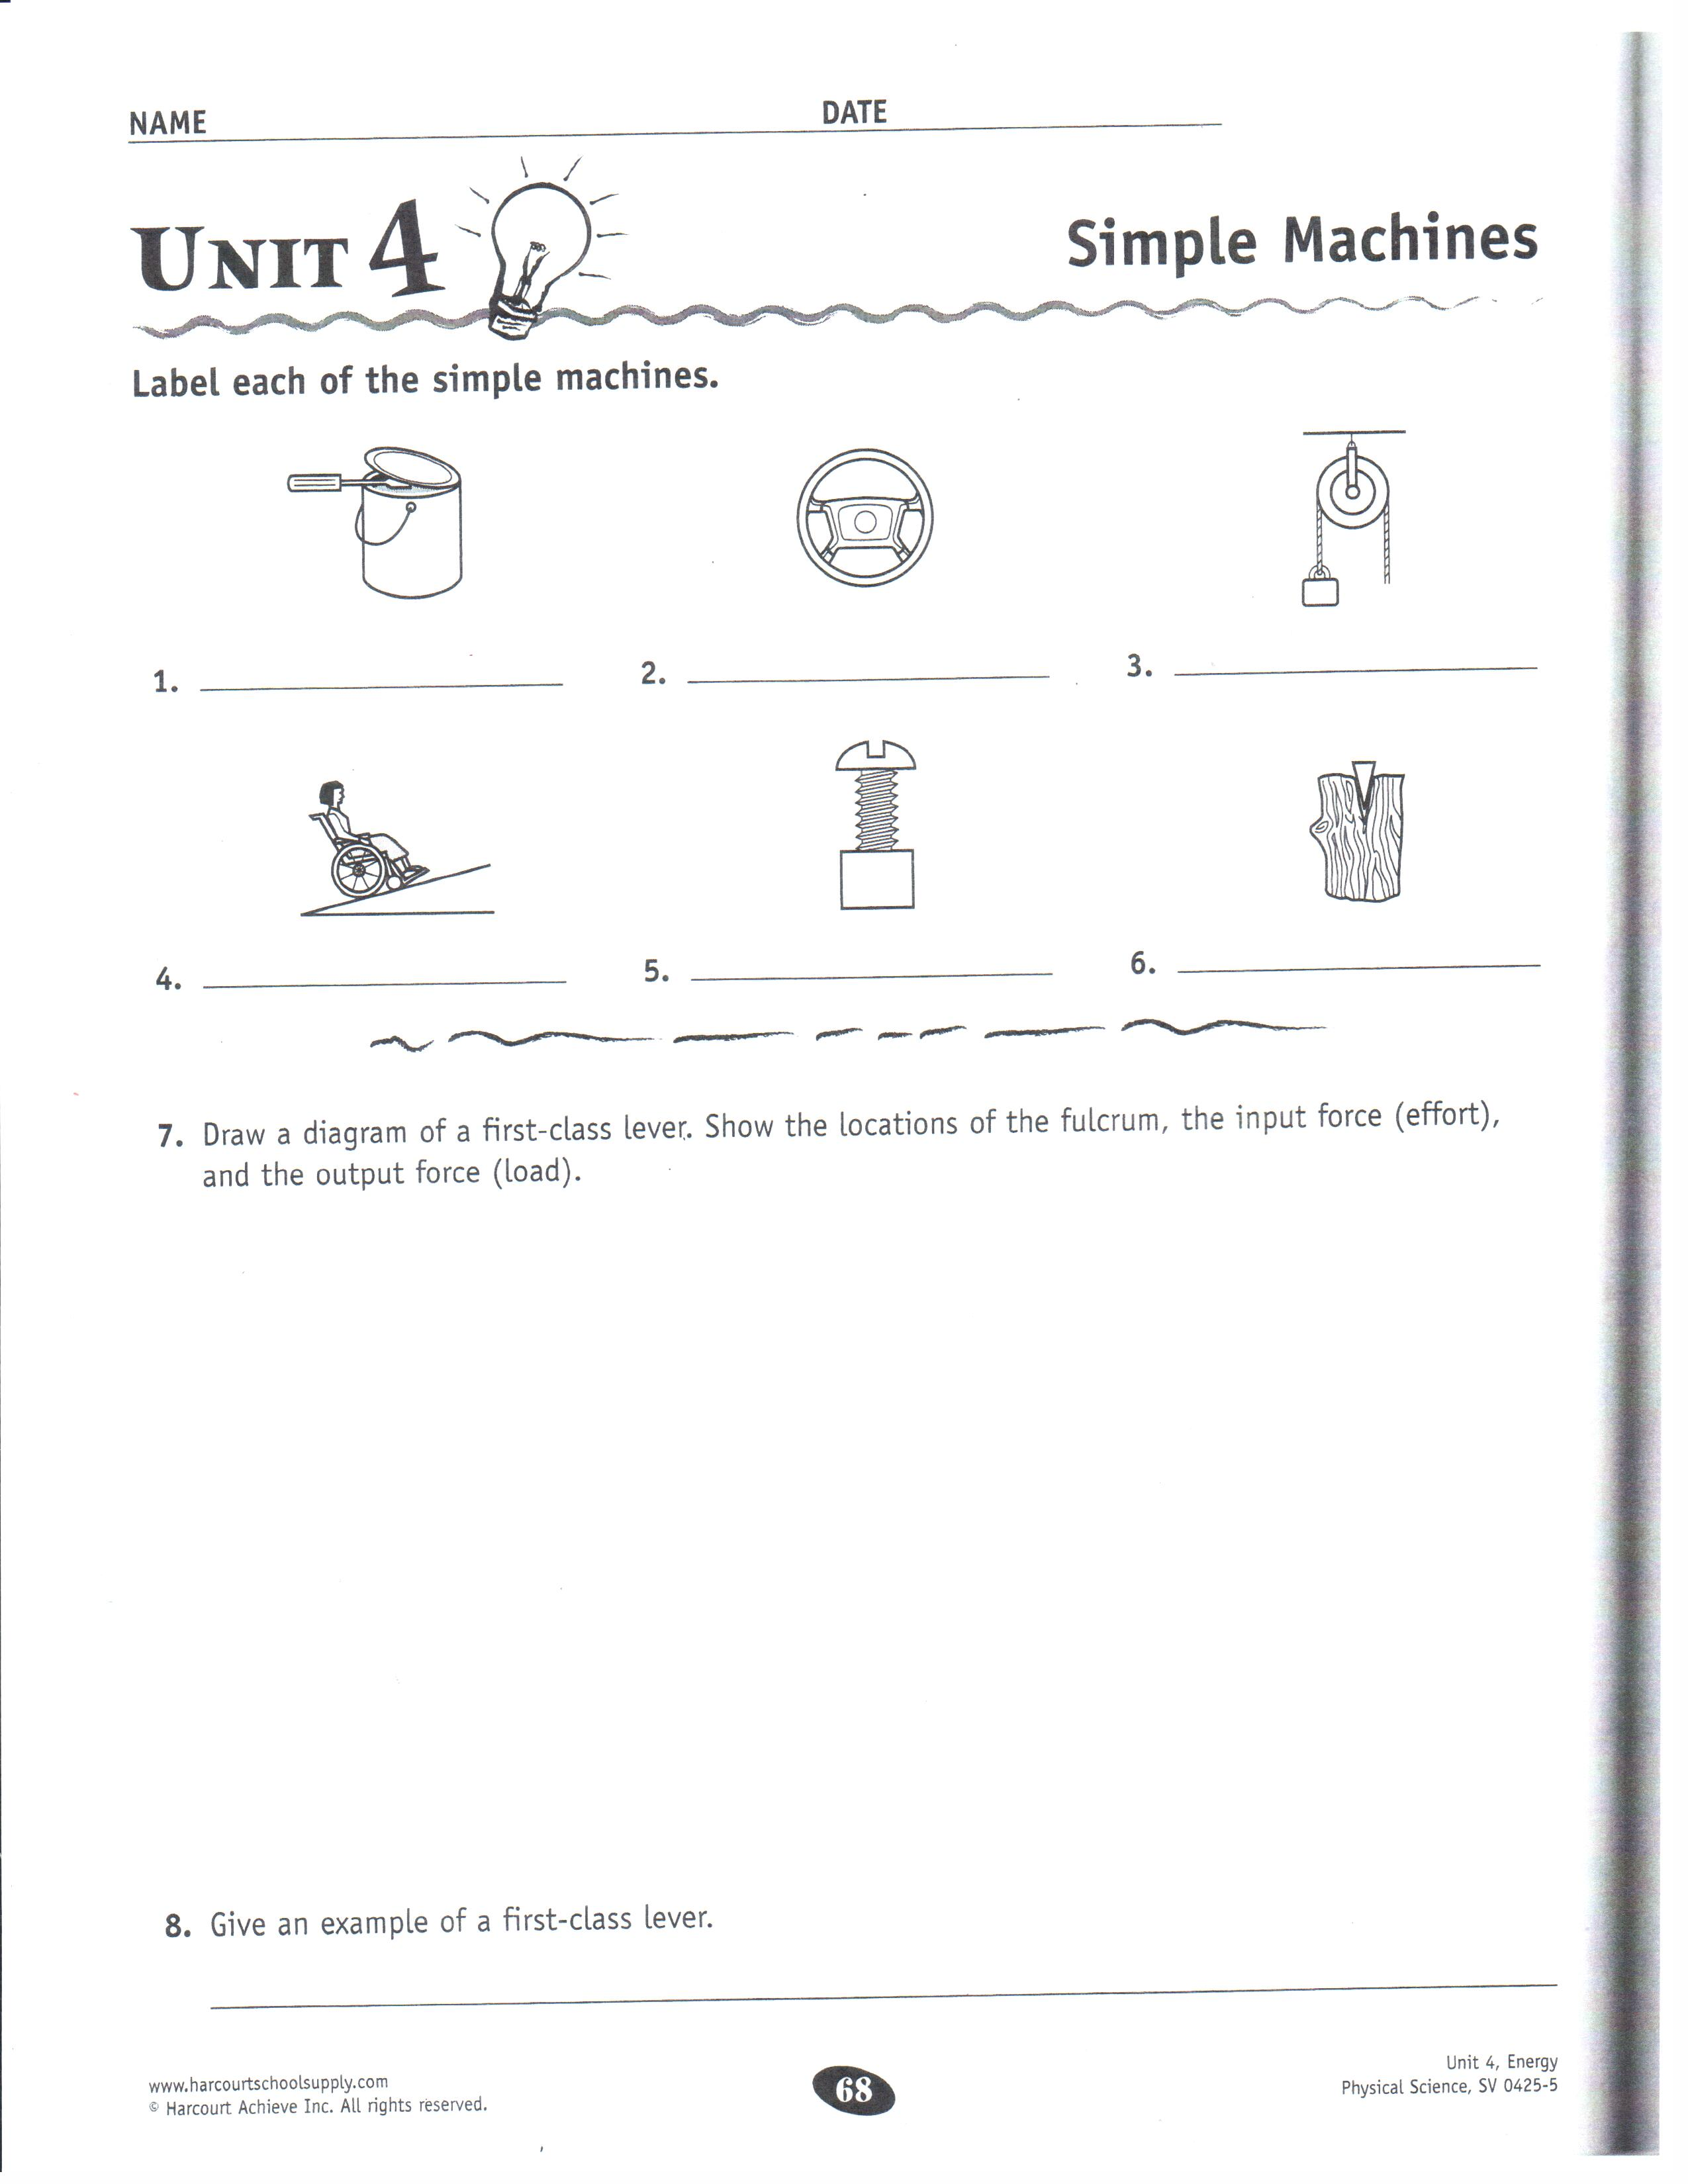 34 Simple Machines Worksheet Middle School